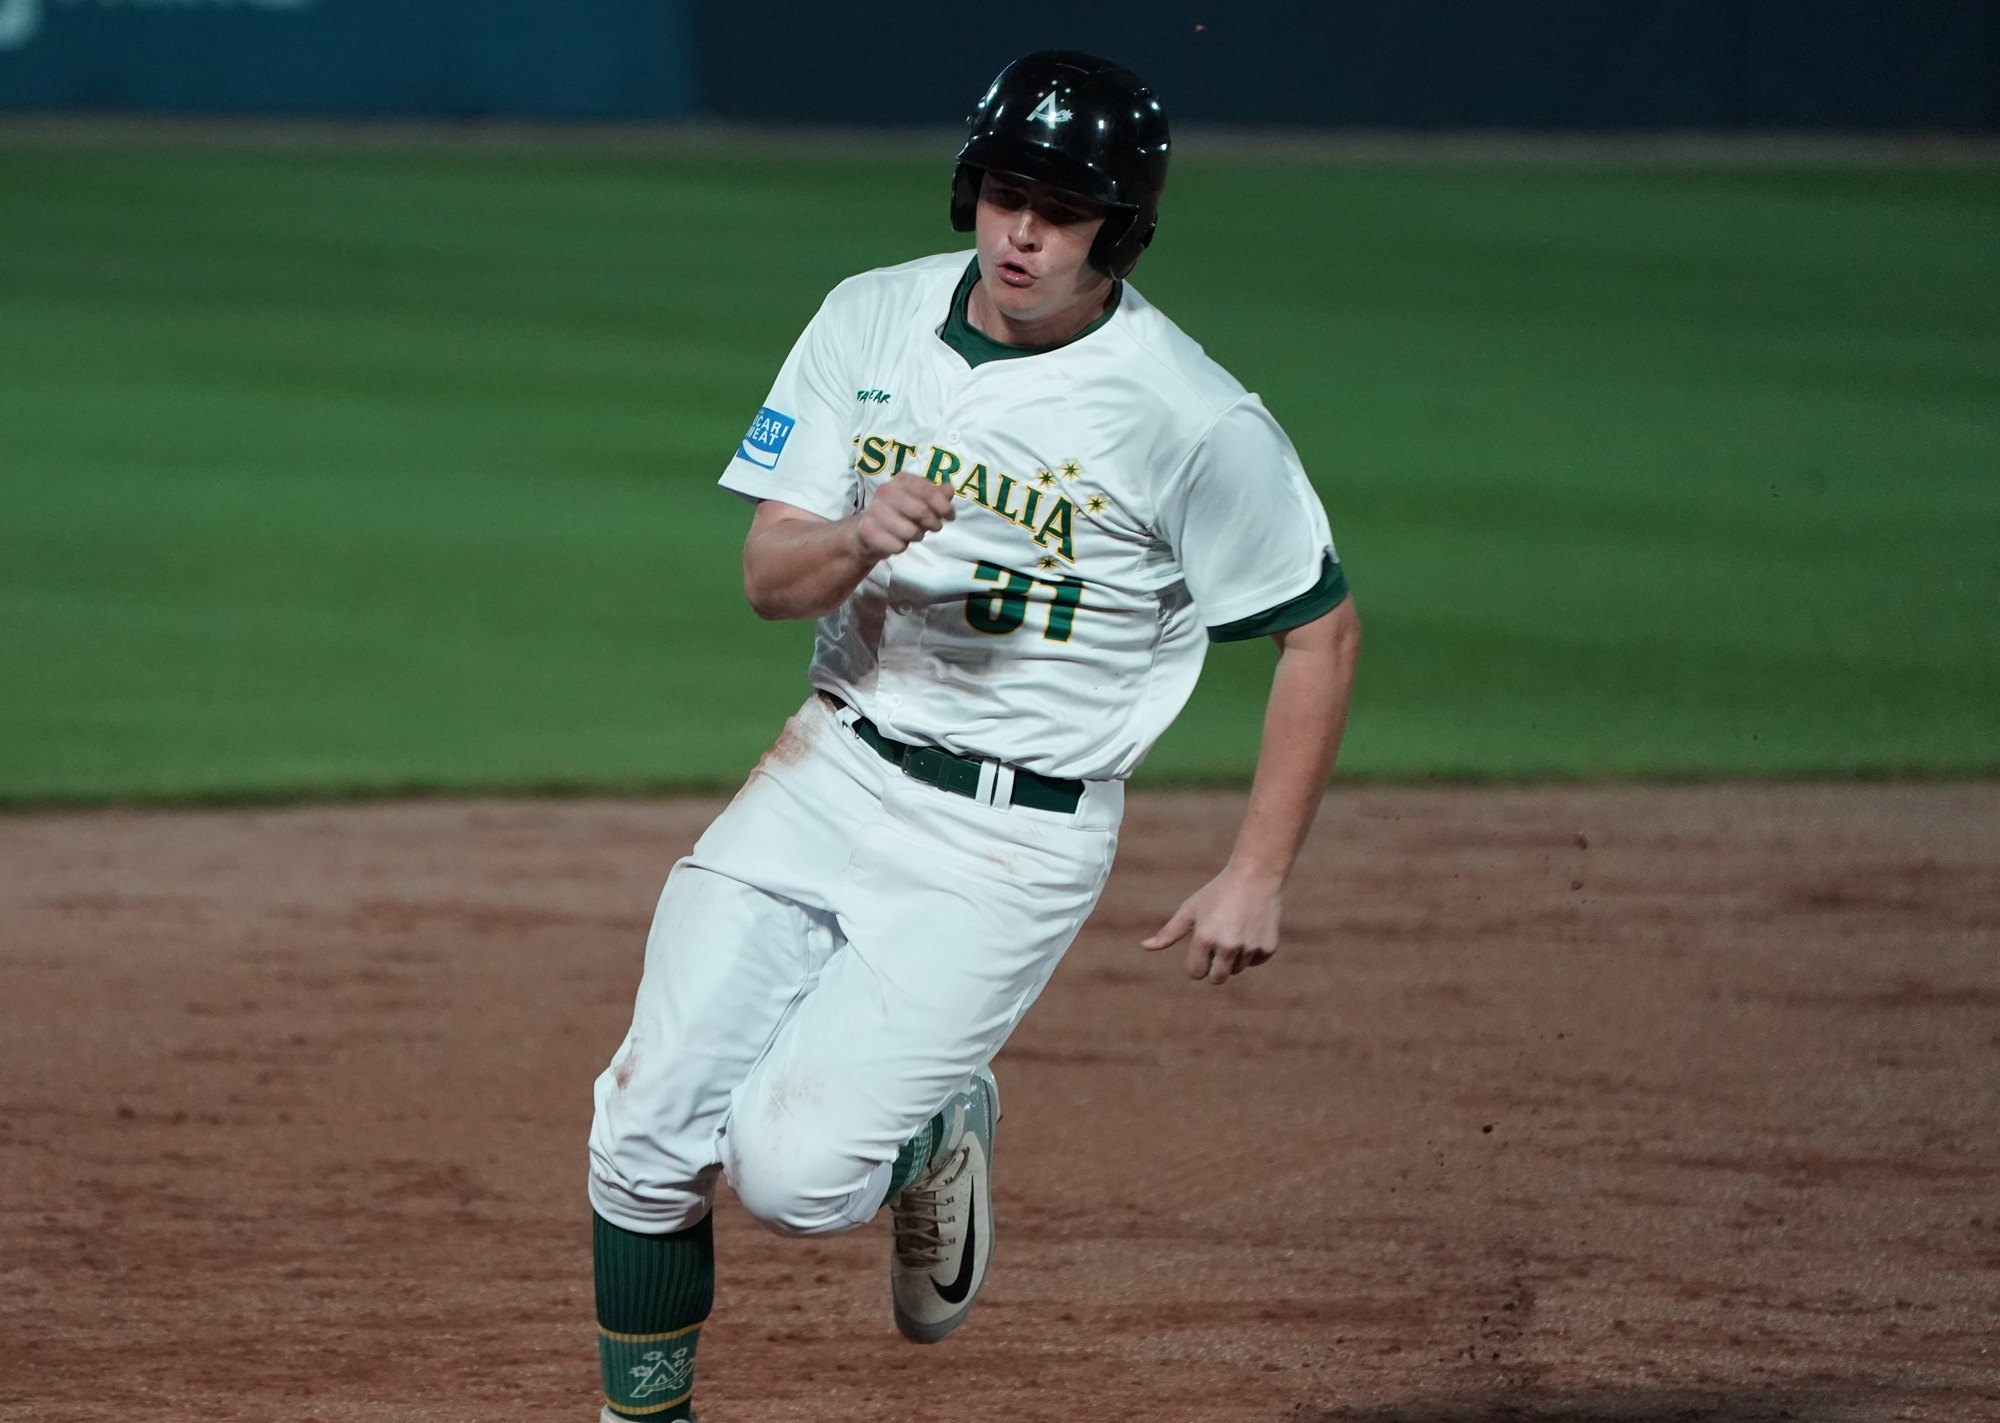 Conor Myles reached on an error, scored the only run of the night